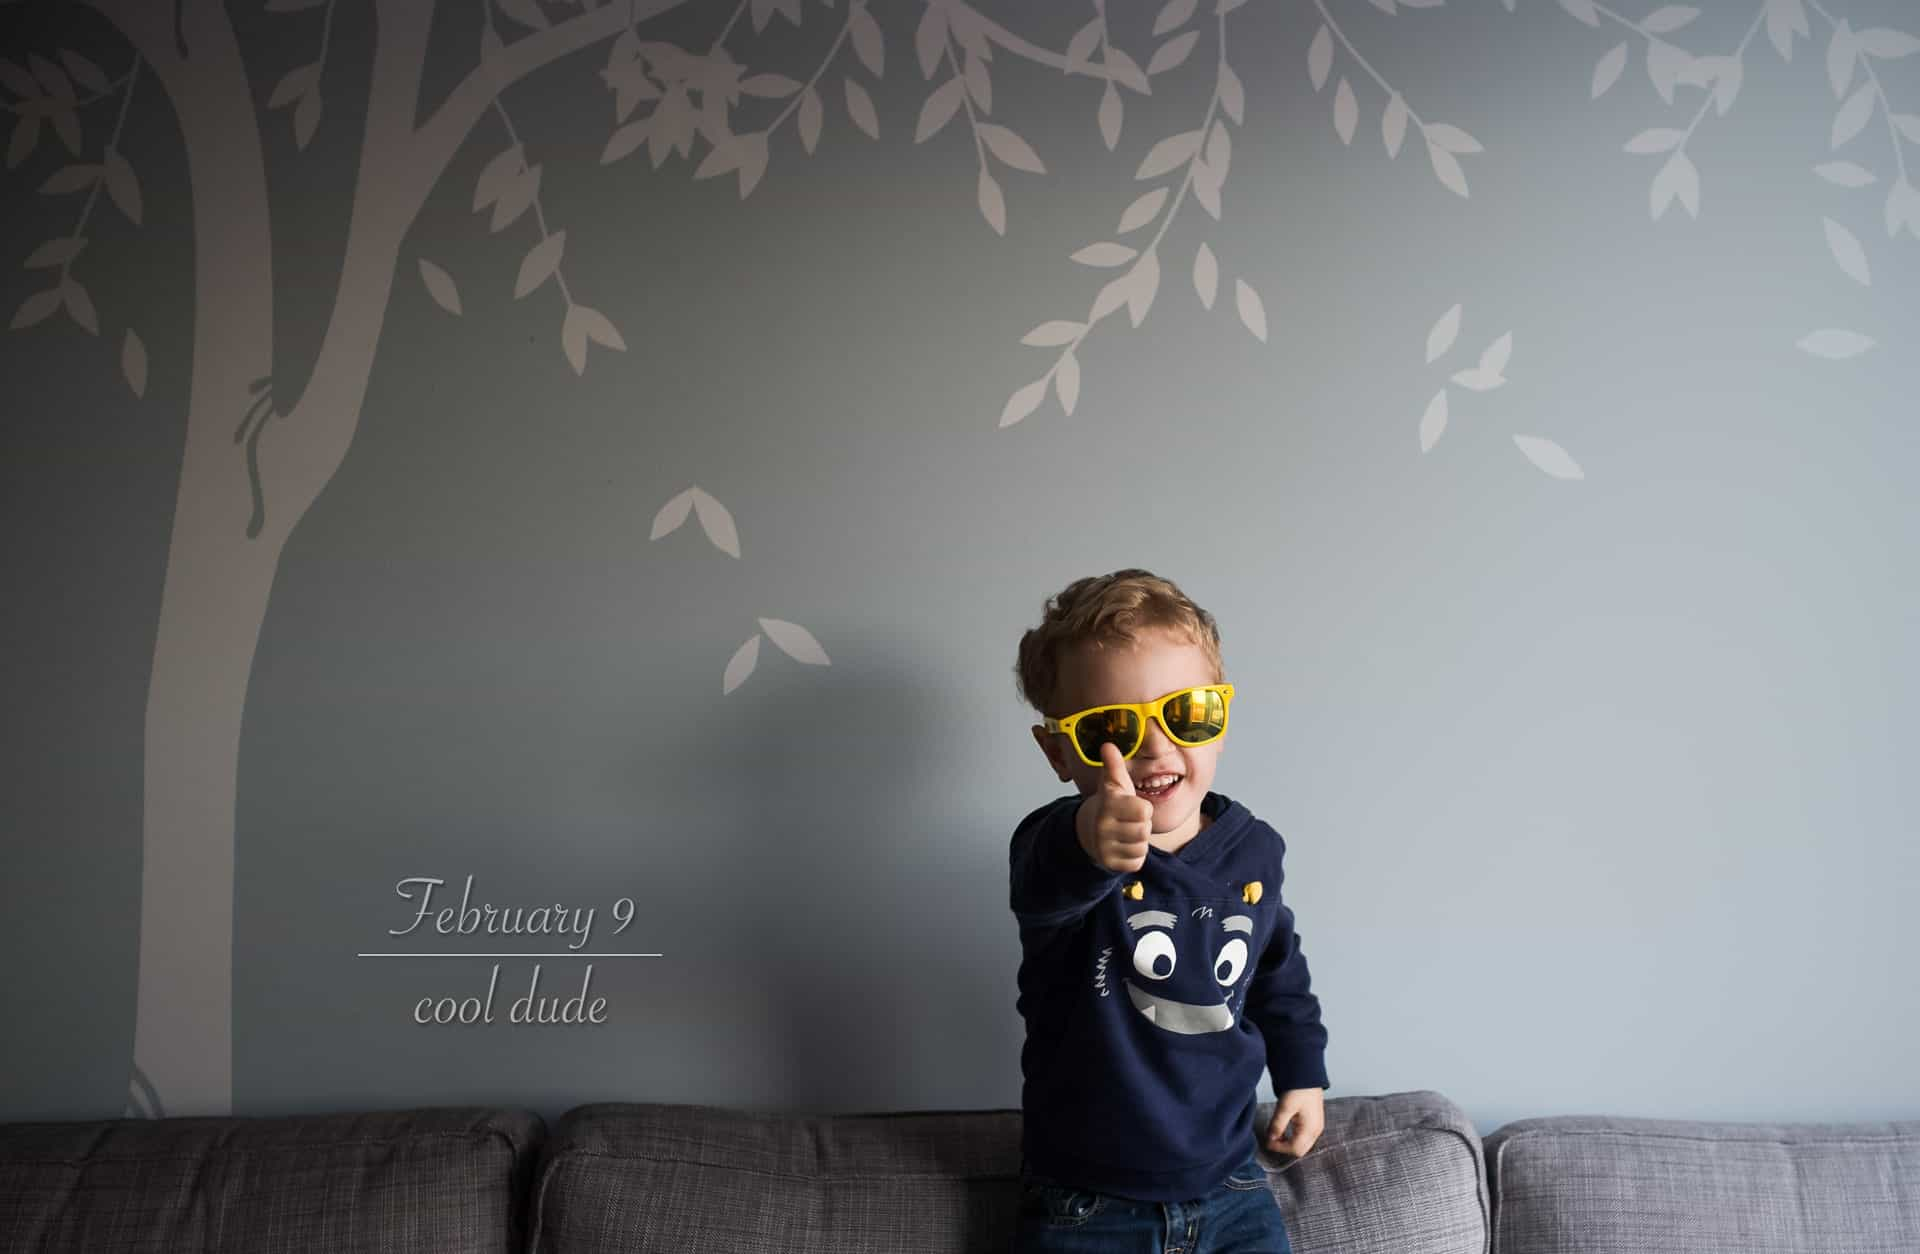 toddler boy with sunglasses on smiling at the camera and giving a thumbs up sign